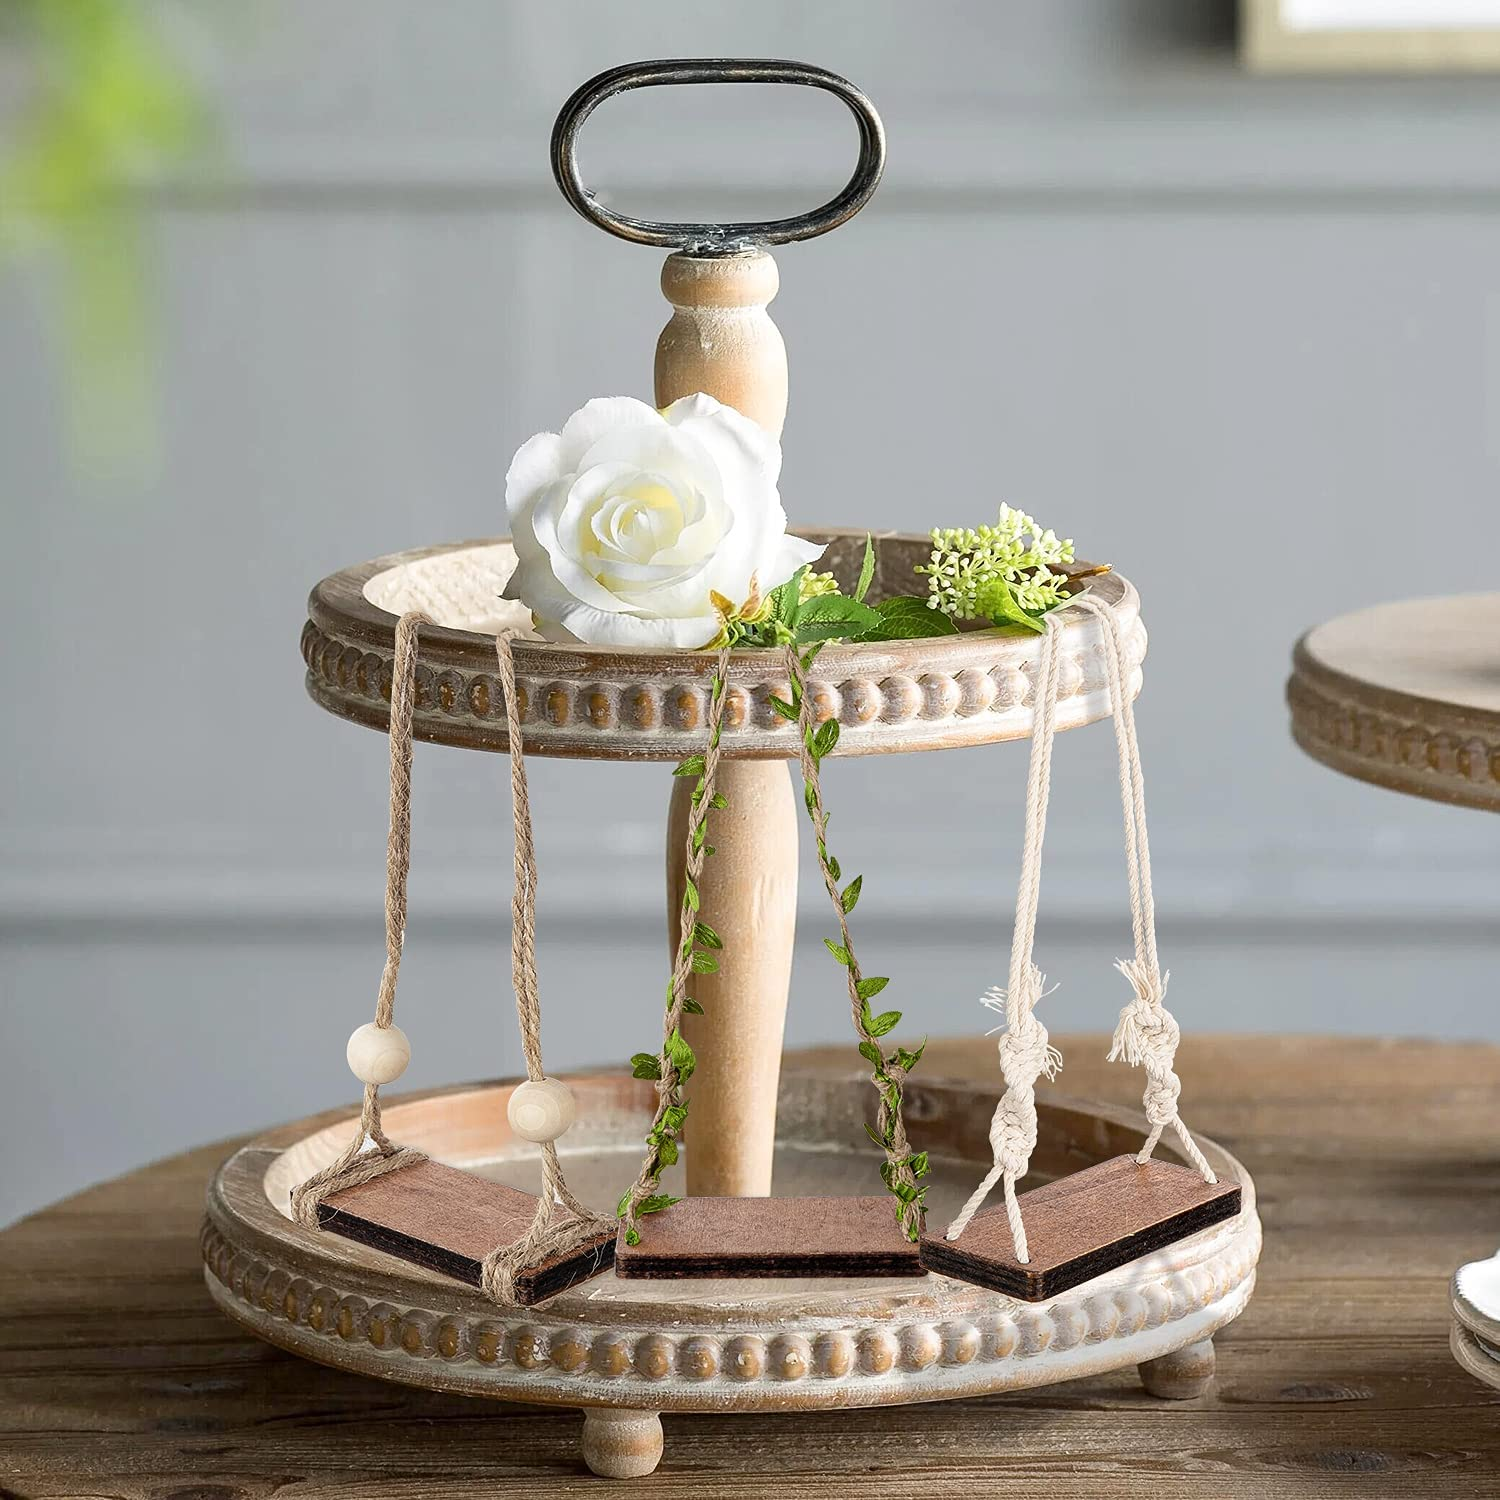 3Pcs Farmhouse Tiered Tray Swings Decoration Rustic Wooden Tiered Tray Decoration Farmhouse Country Style Decor Shelf Sign Swing Wood Bead Decor for Summer Farmhouse Stand Display Photo Prop